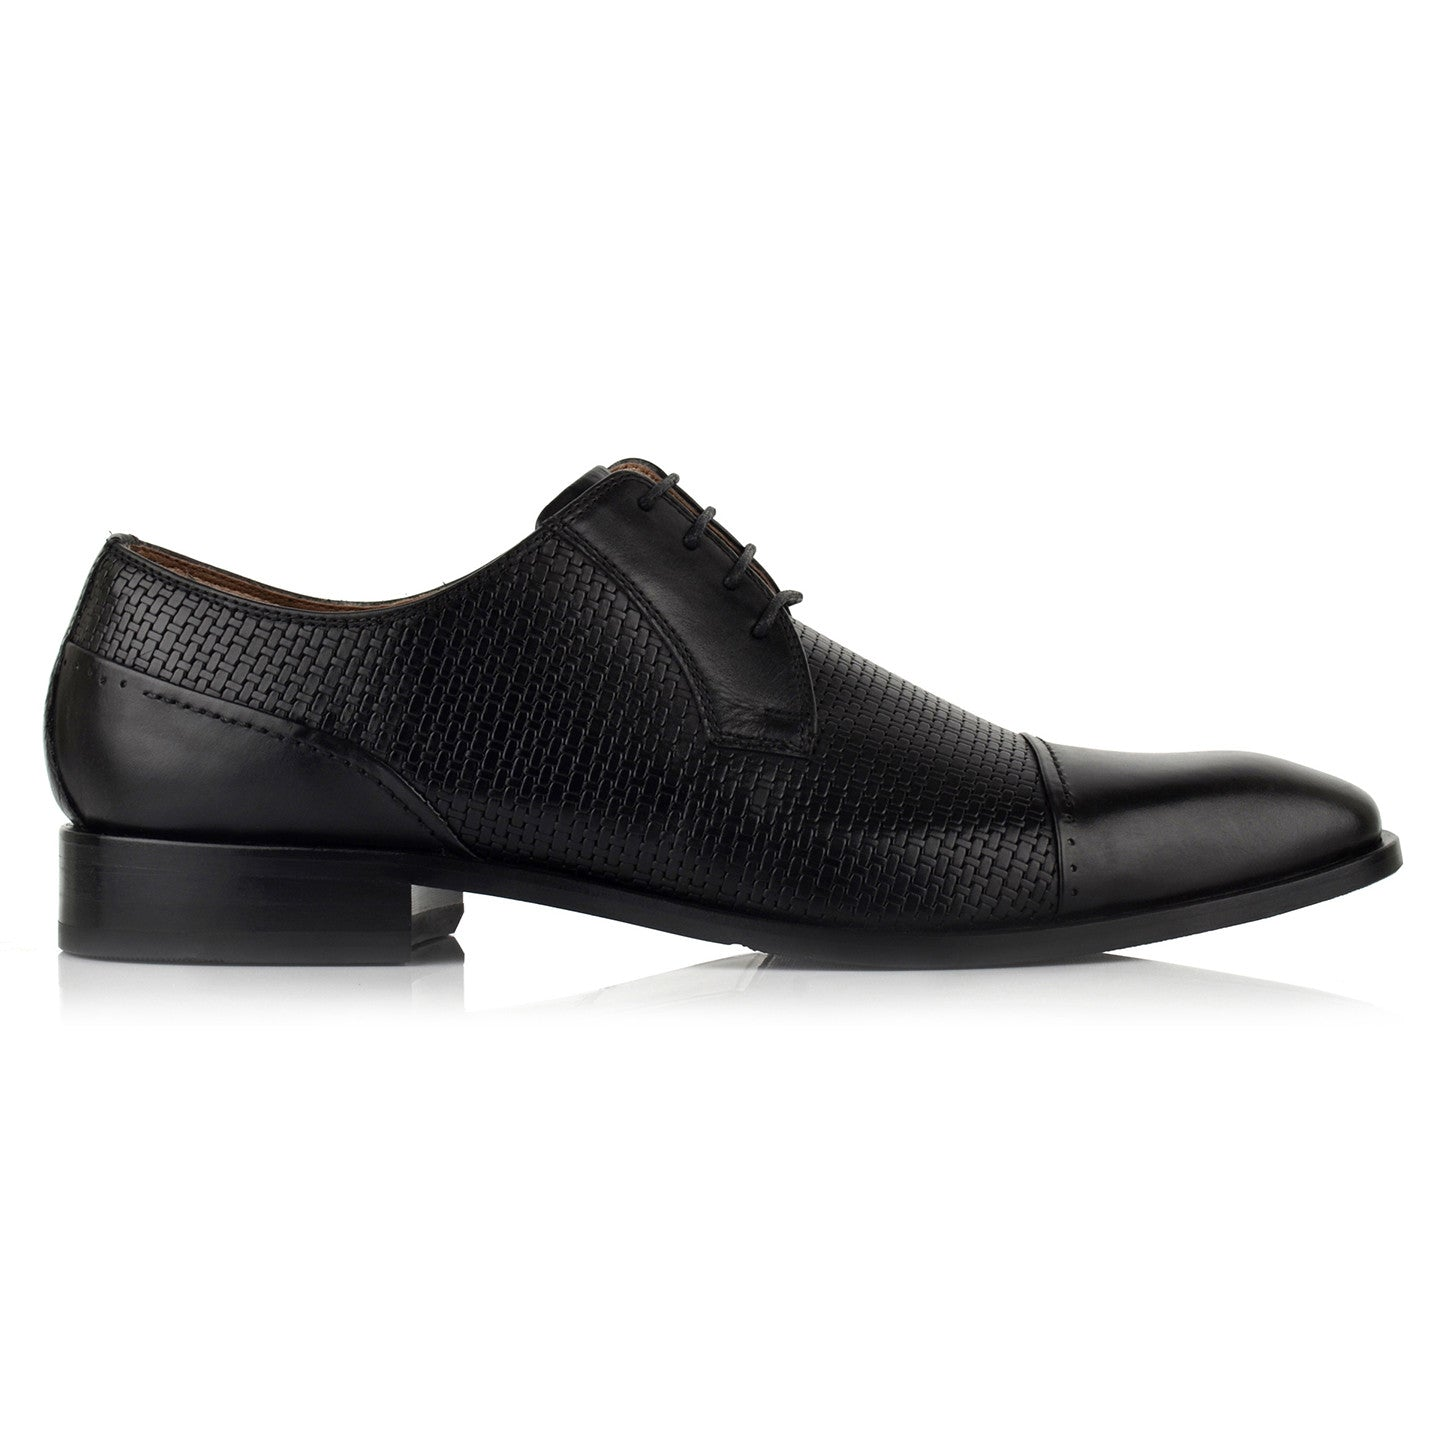 LM541 - Language Marchio Men's Dress Black Derby Shoes